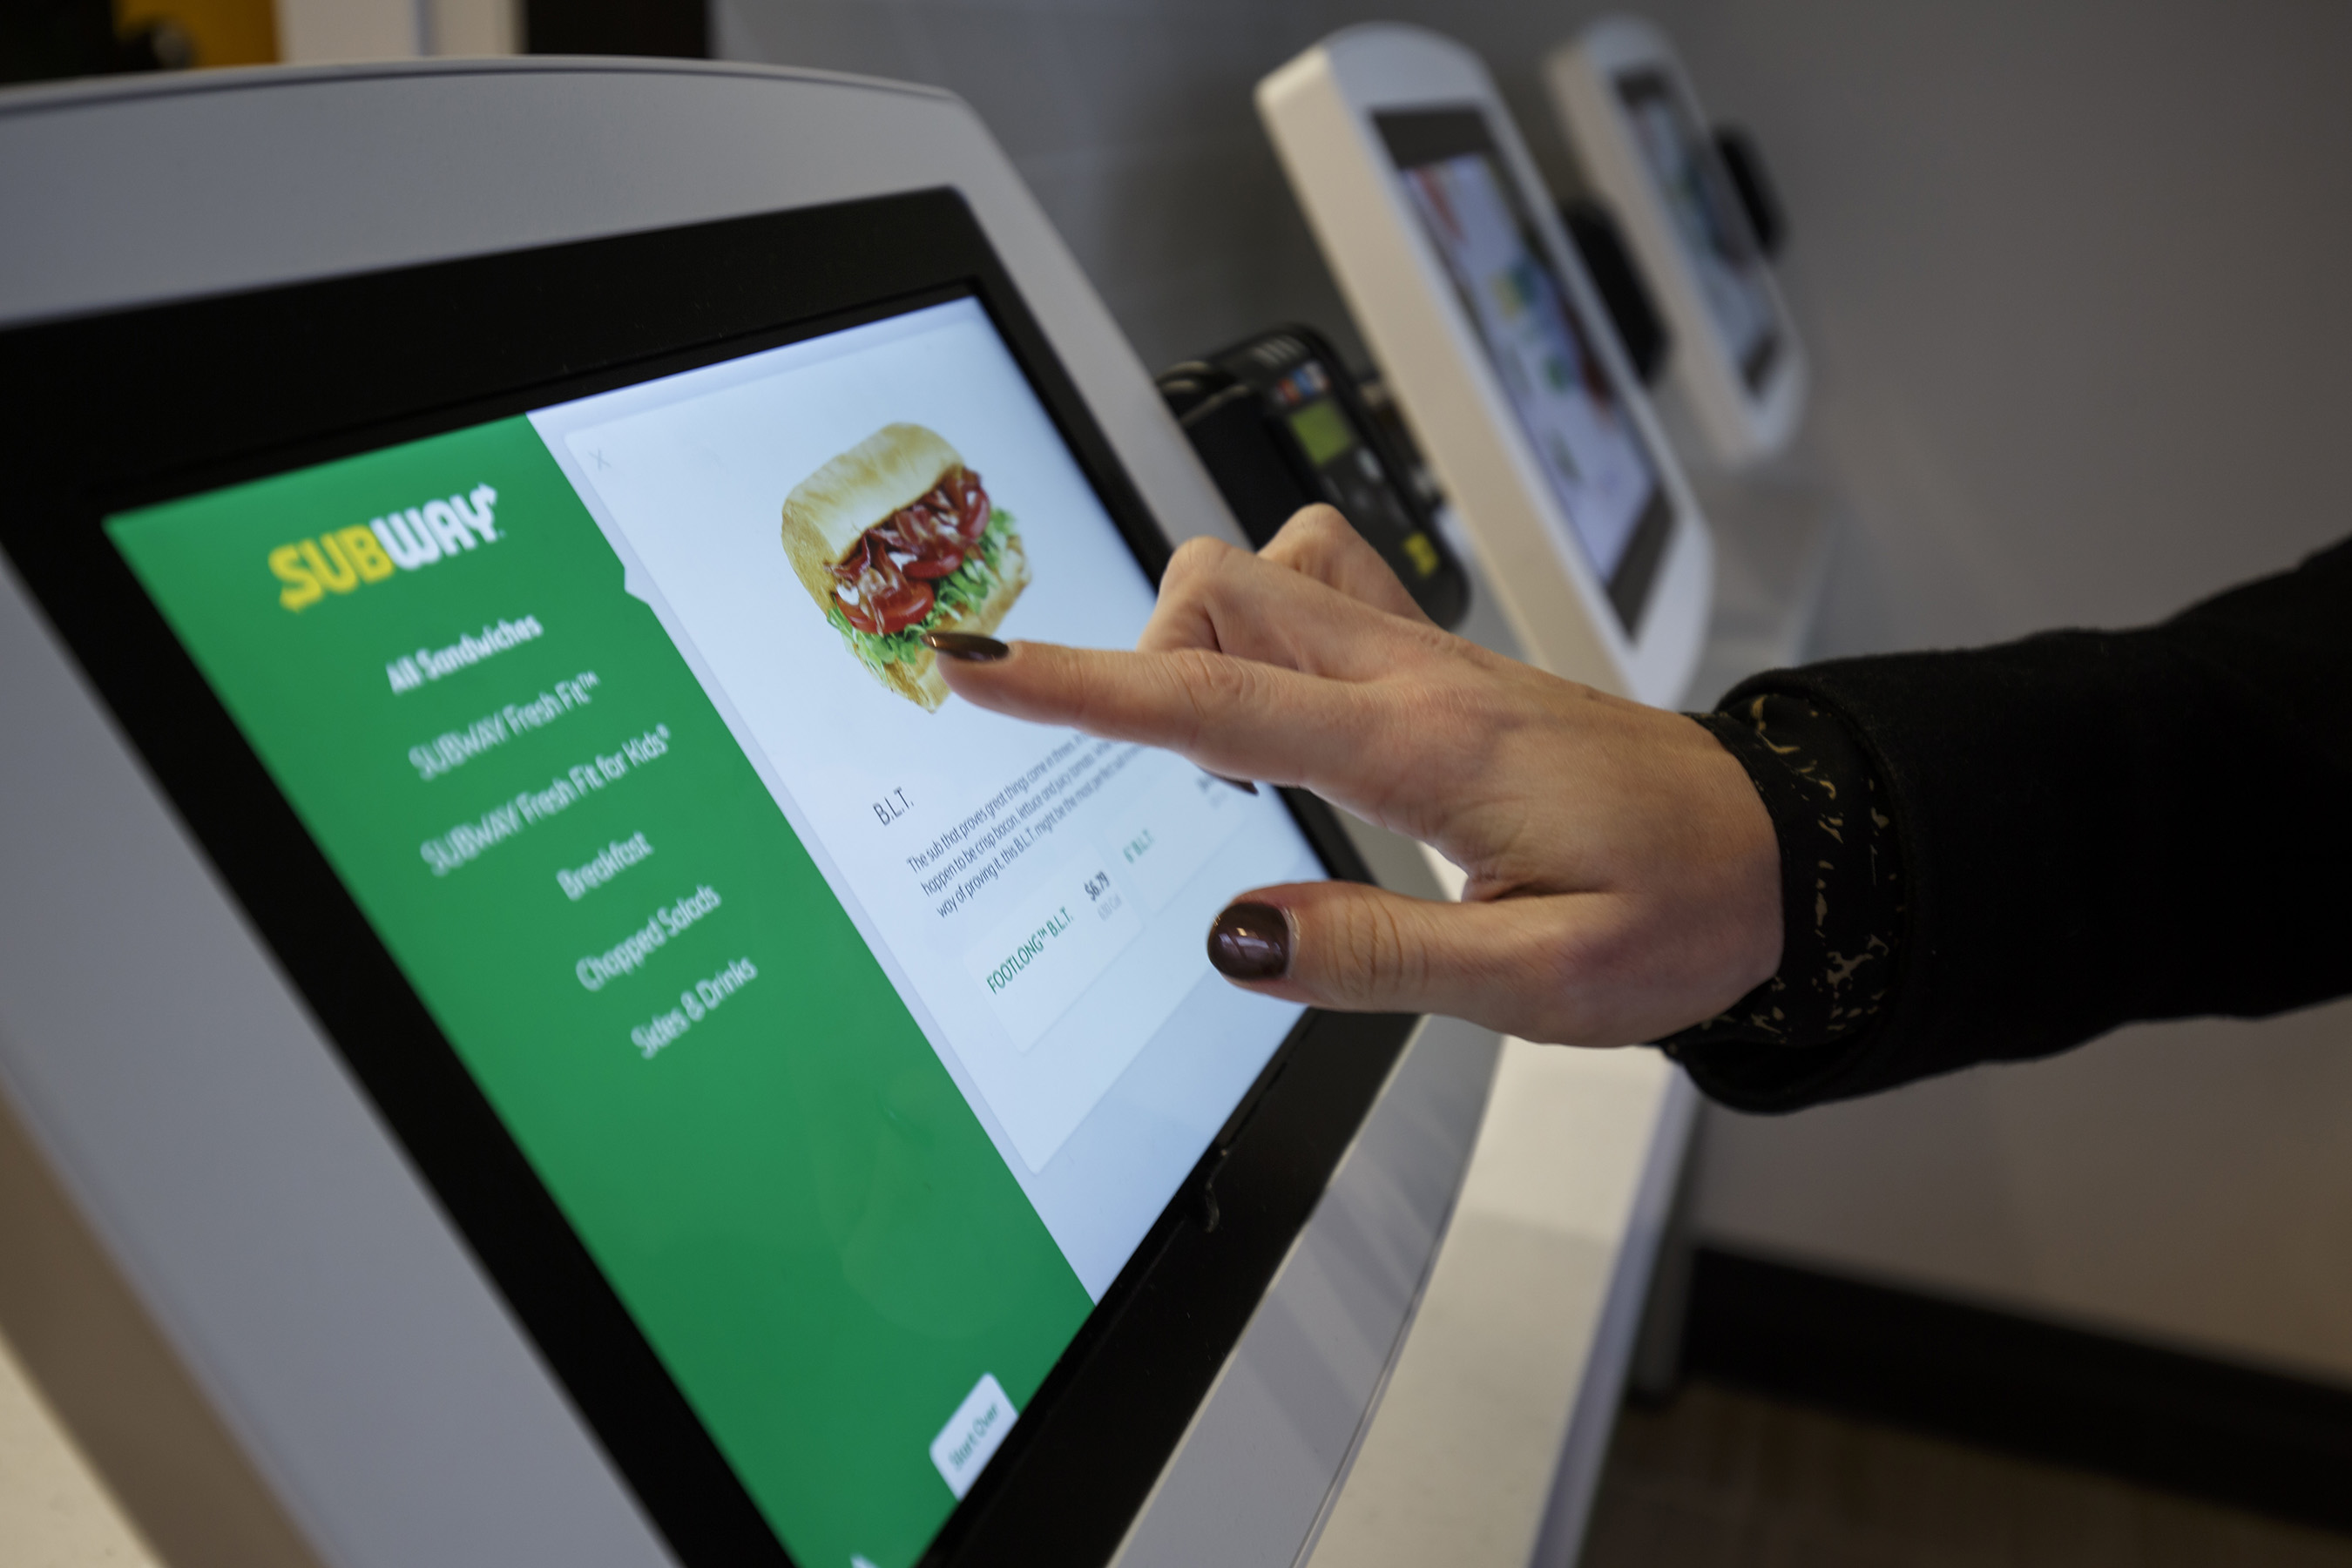 Subway Announces Self Order Kiosks In 12 Pilot Locations